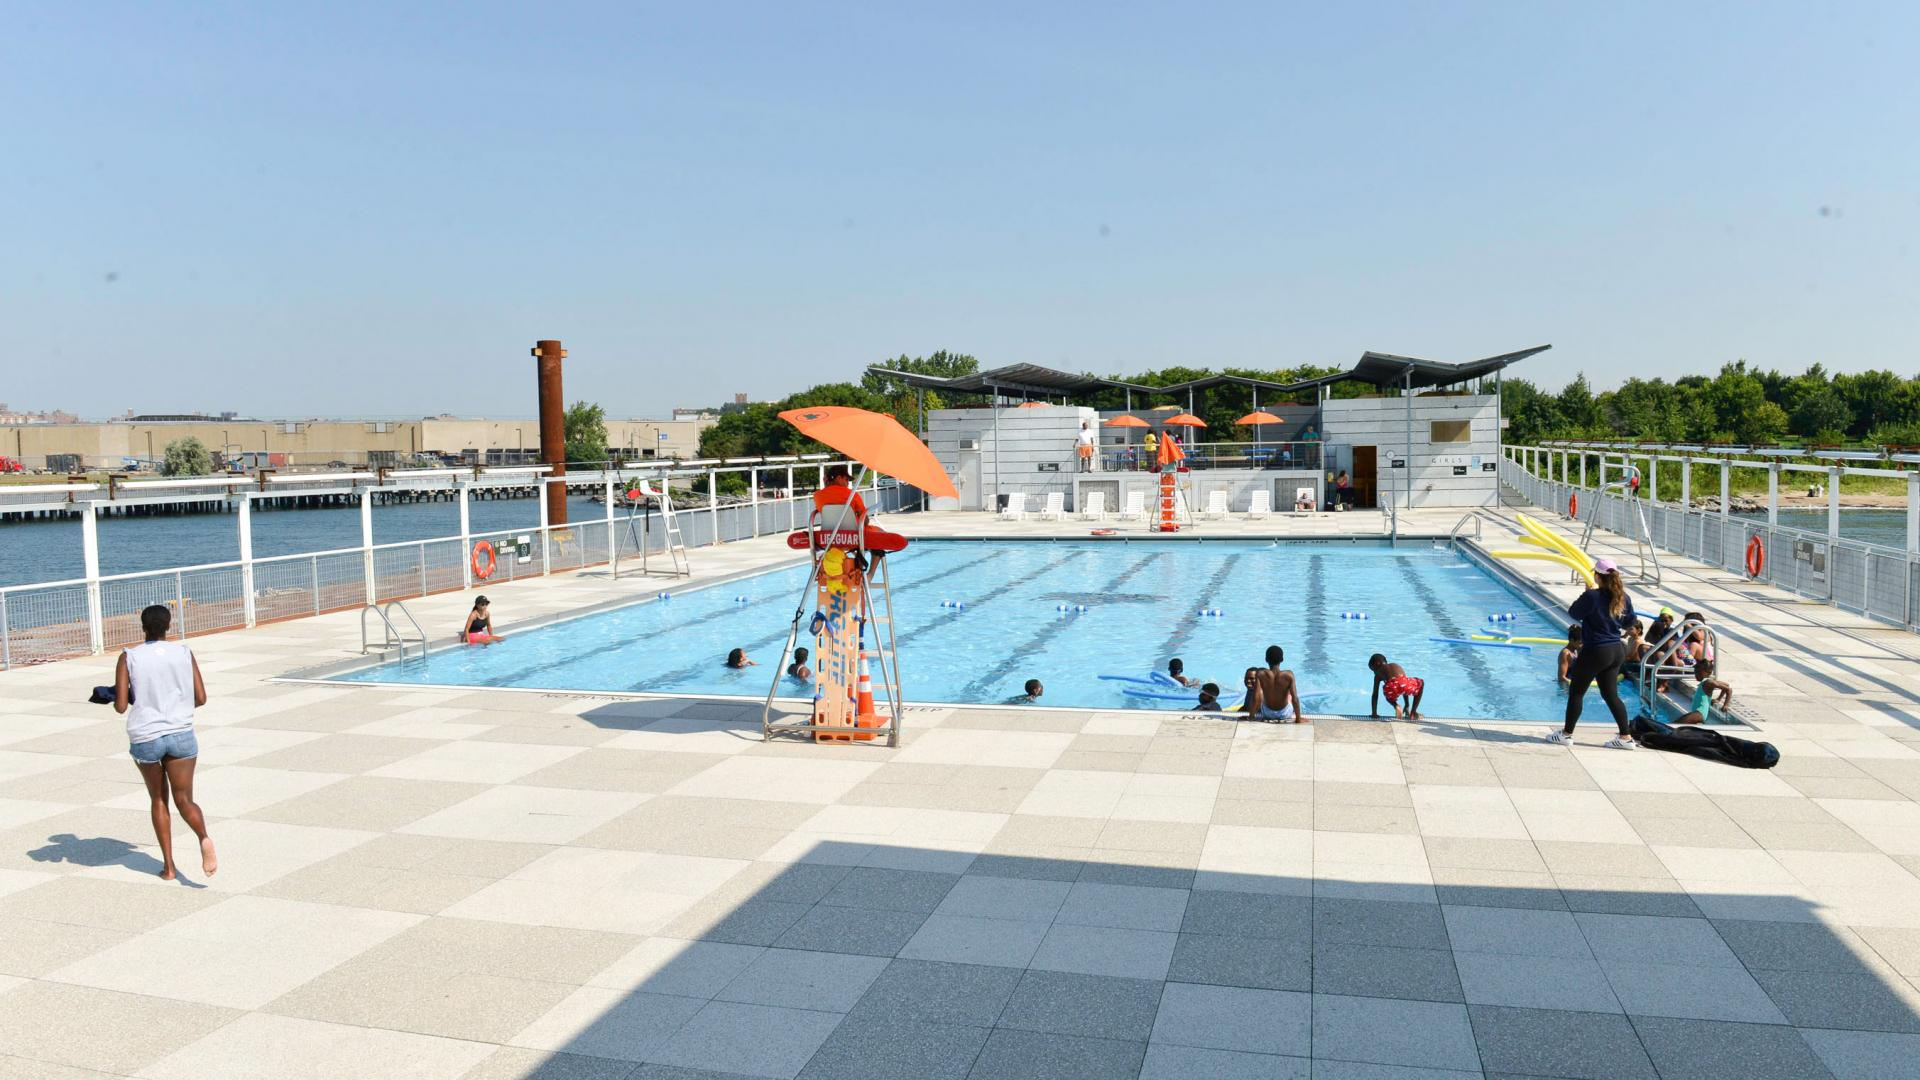 Barretto Point Floating Pool in The Bronx, New York City